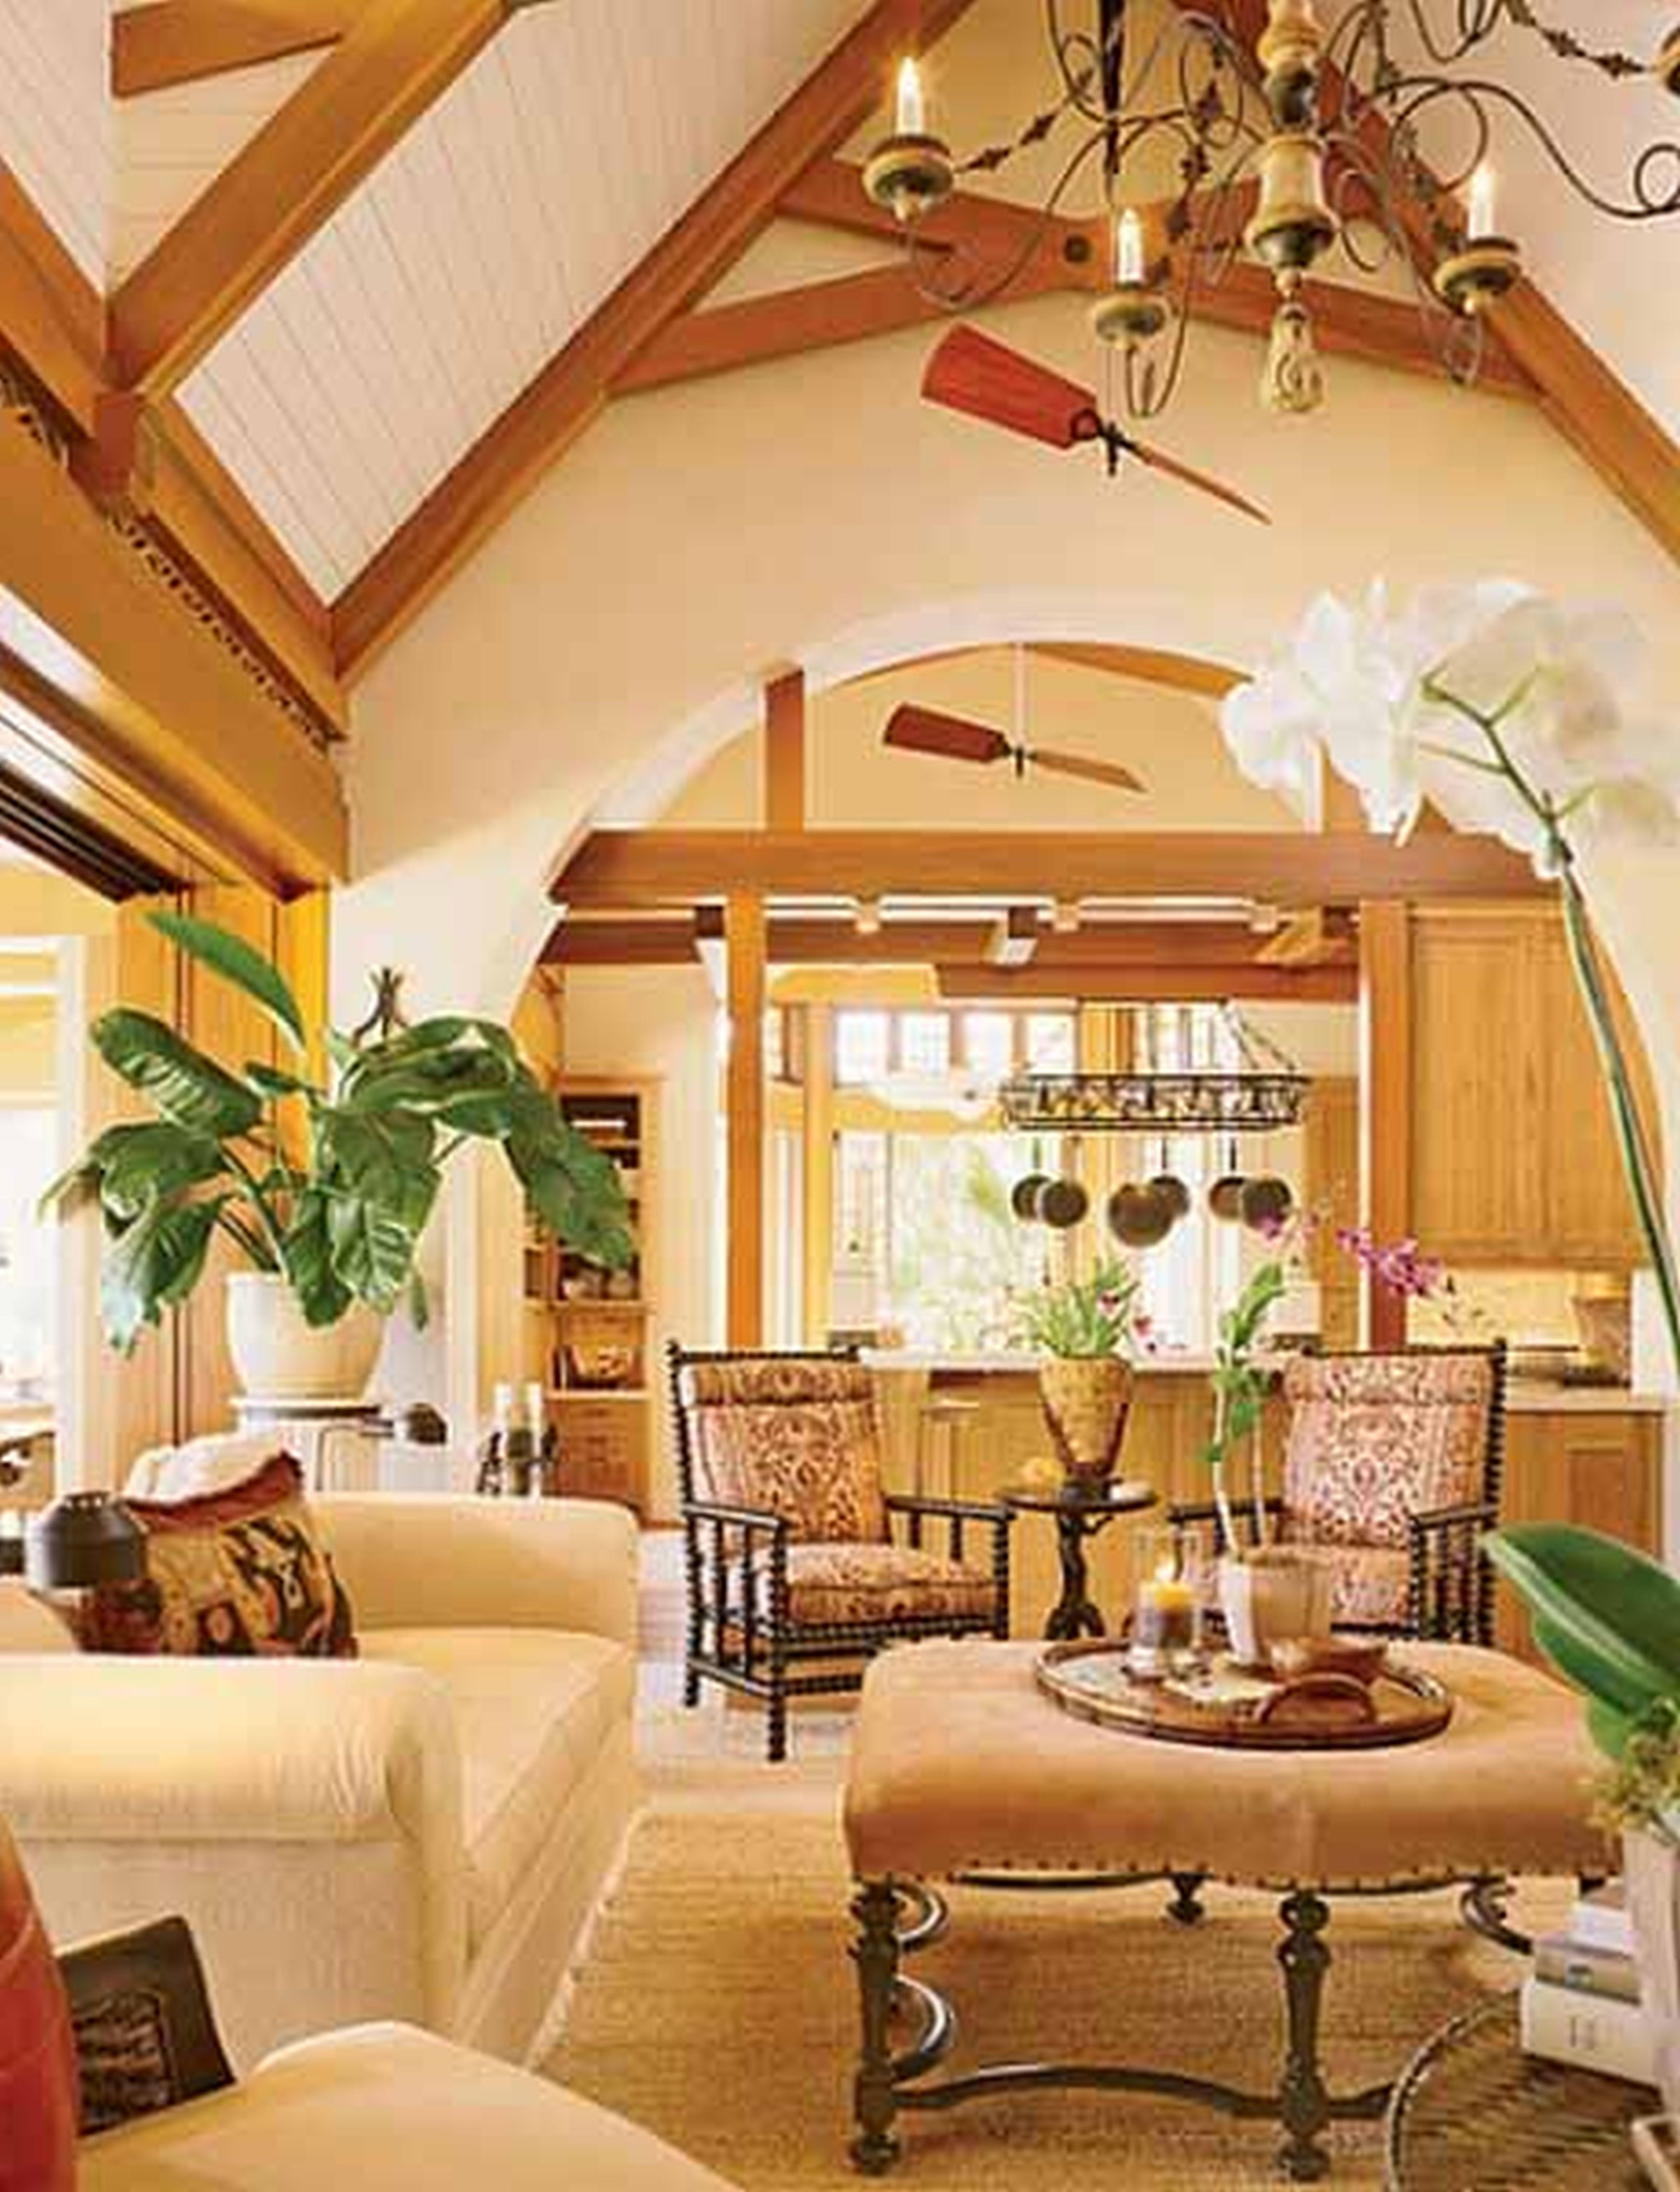 Comfy Tropical Decor Ideas That Combine Style With Practicality Great Photos Decoratorist